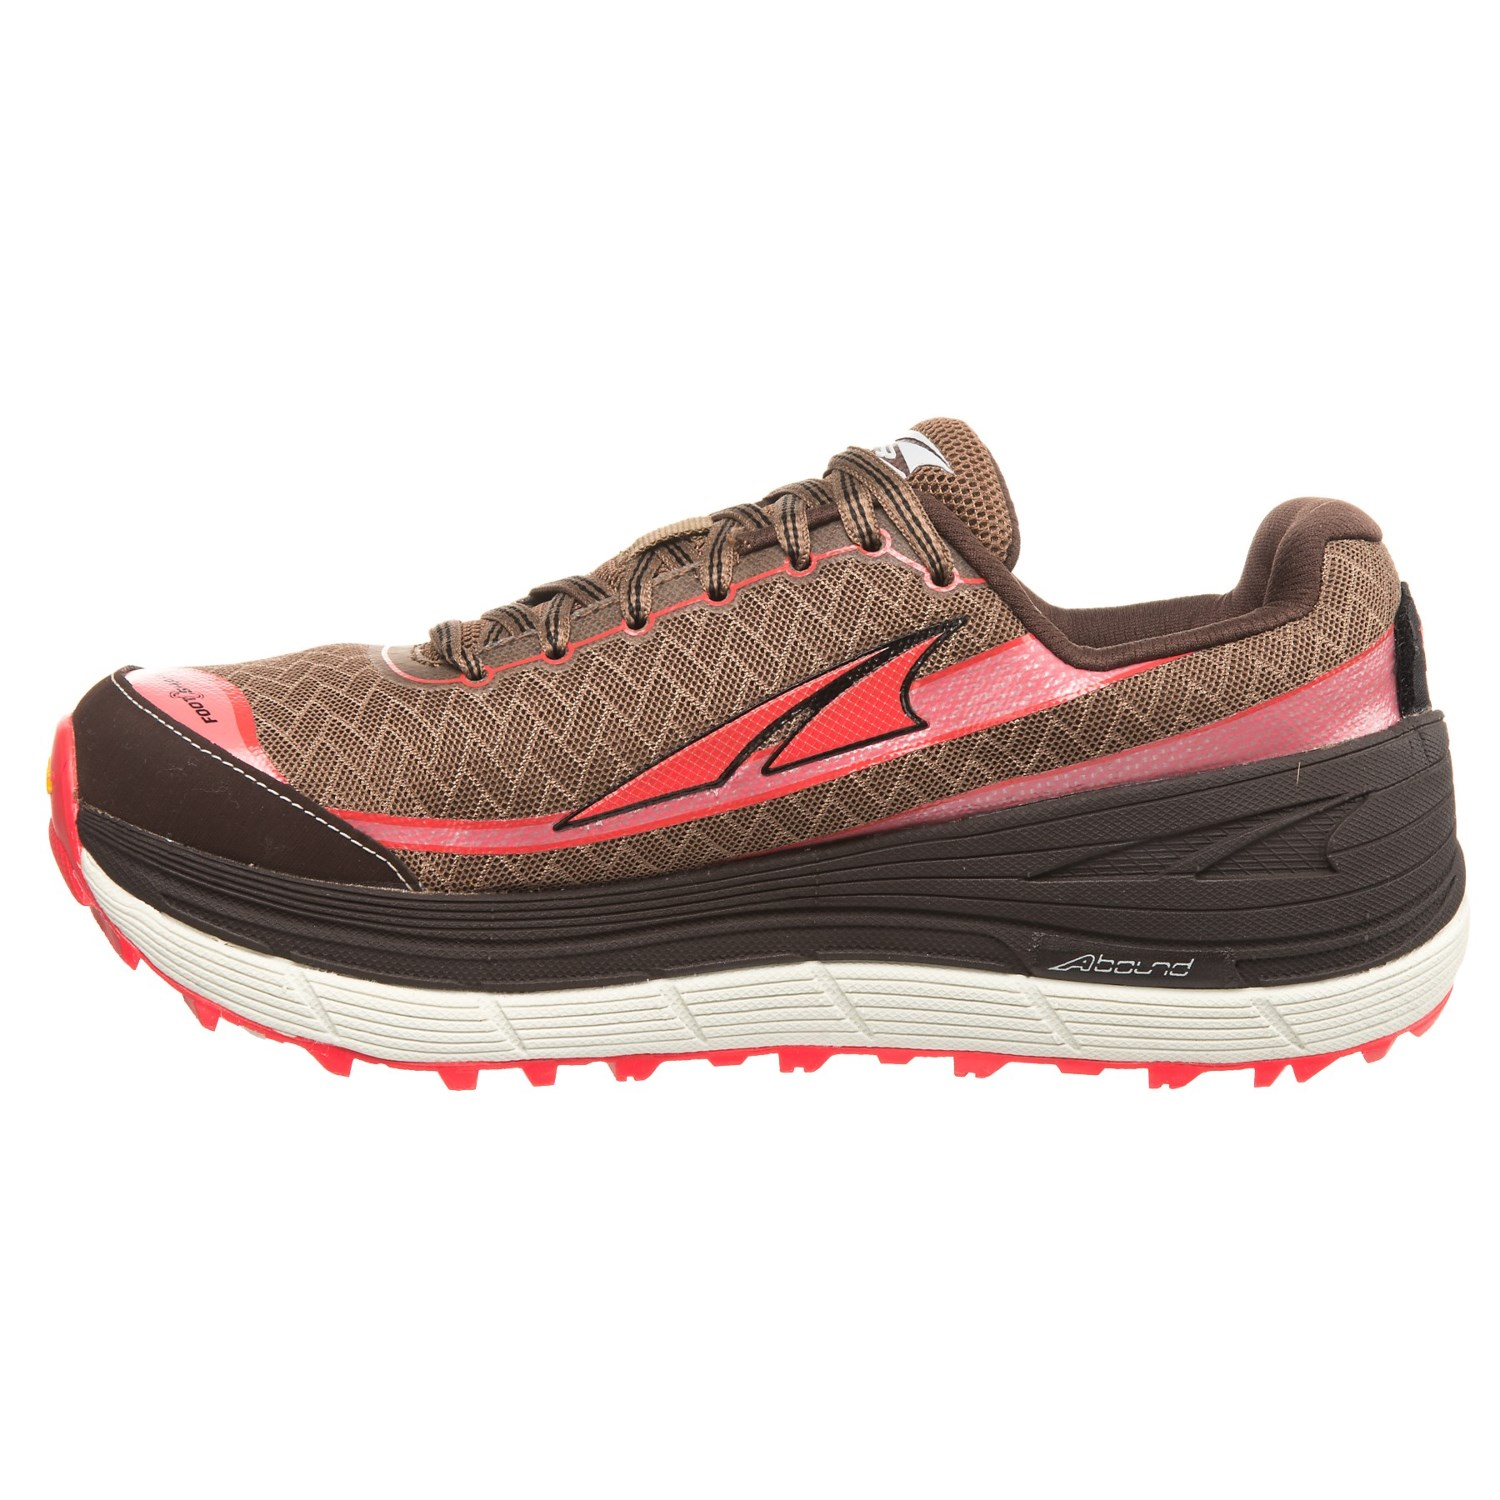 Altra Trail Running Shoes Reviews